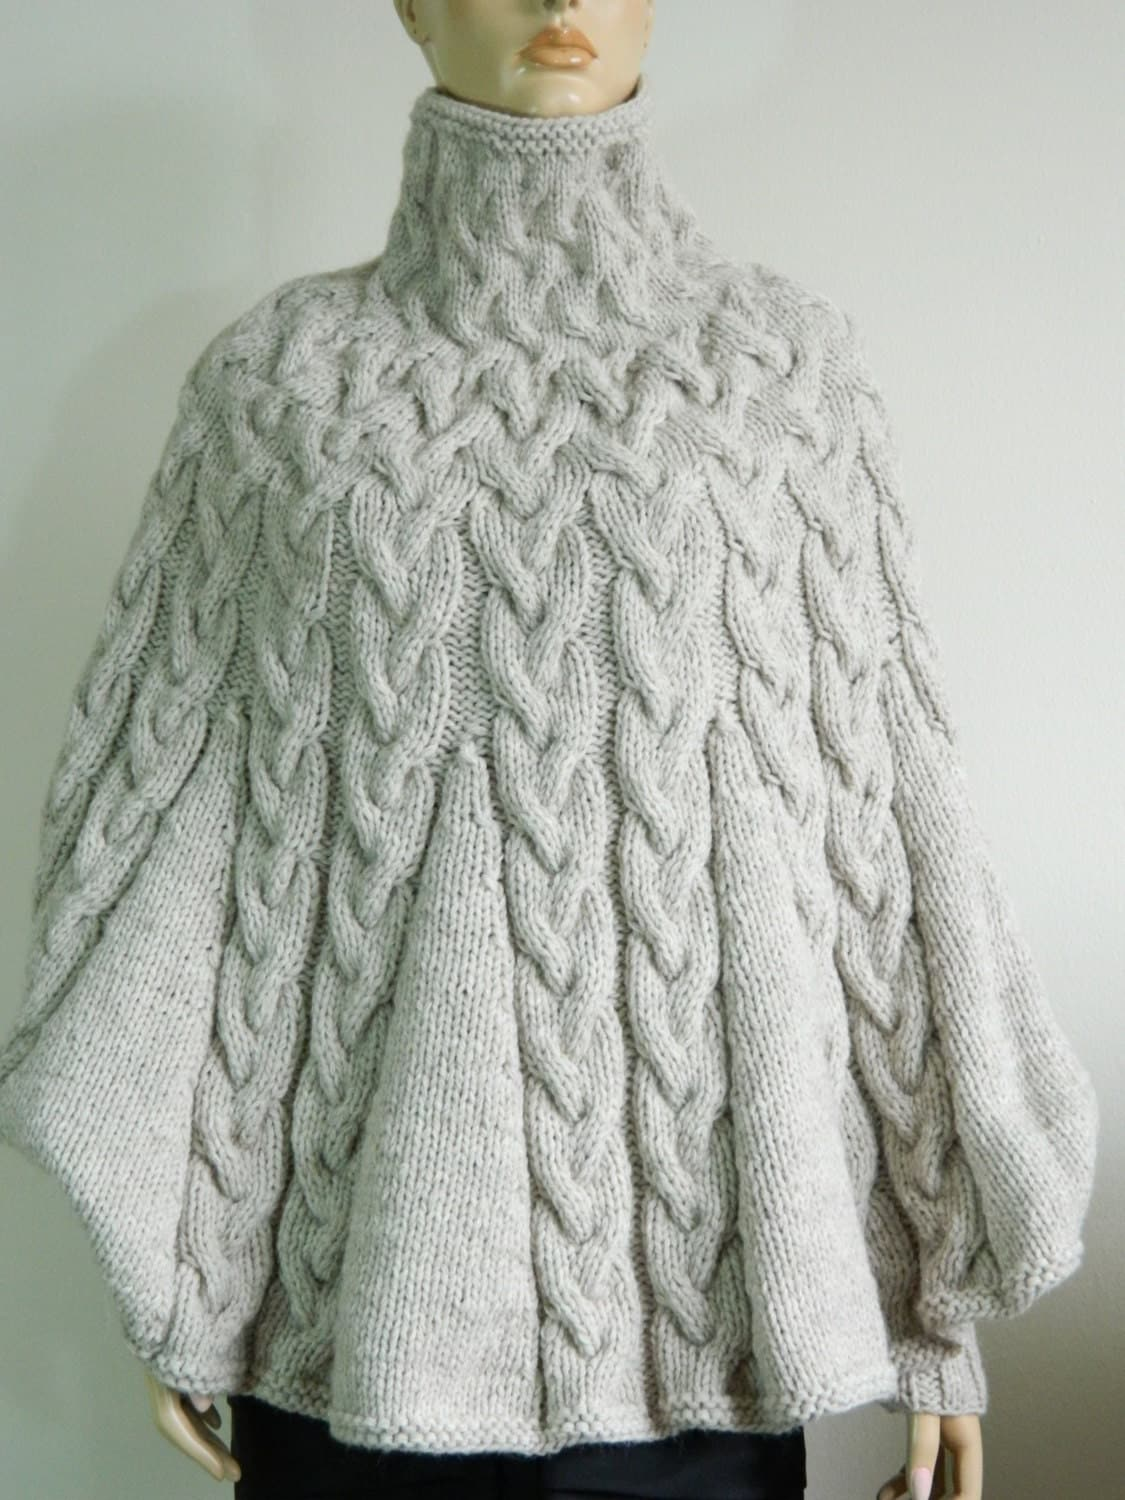 Knitting Pattern For Turtleneck Poncho : Hand Knit Turtleneck Poncho with sleeves from Alpaca by ...